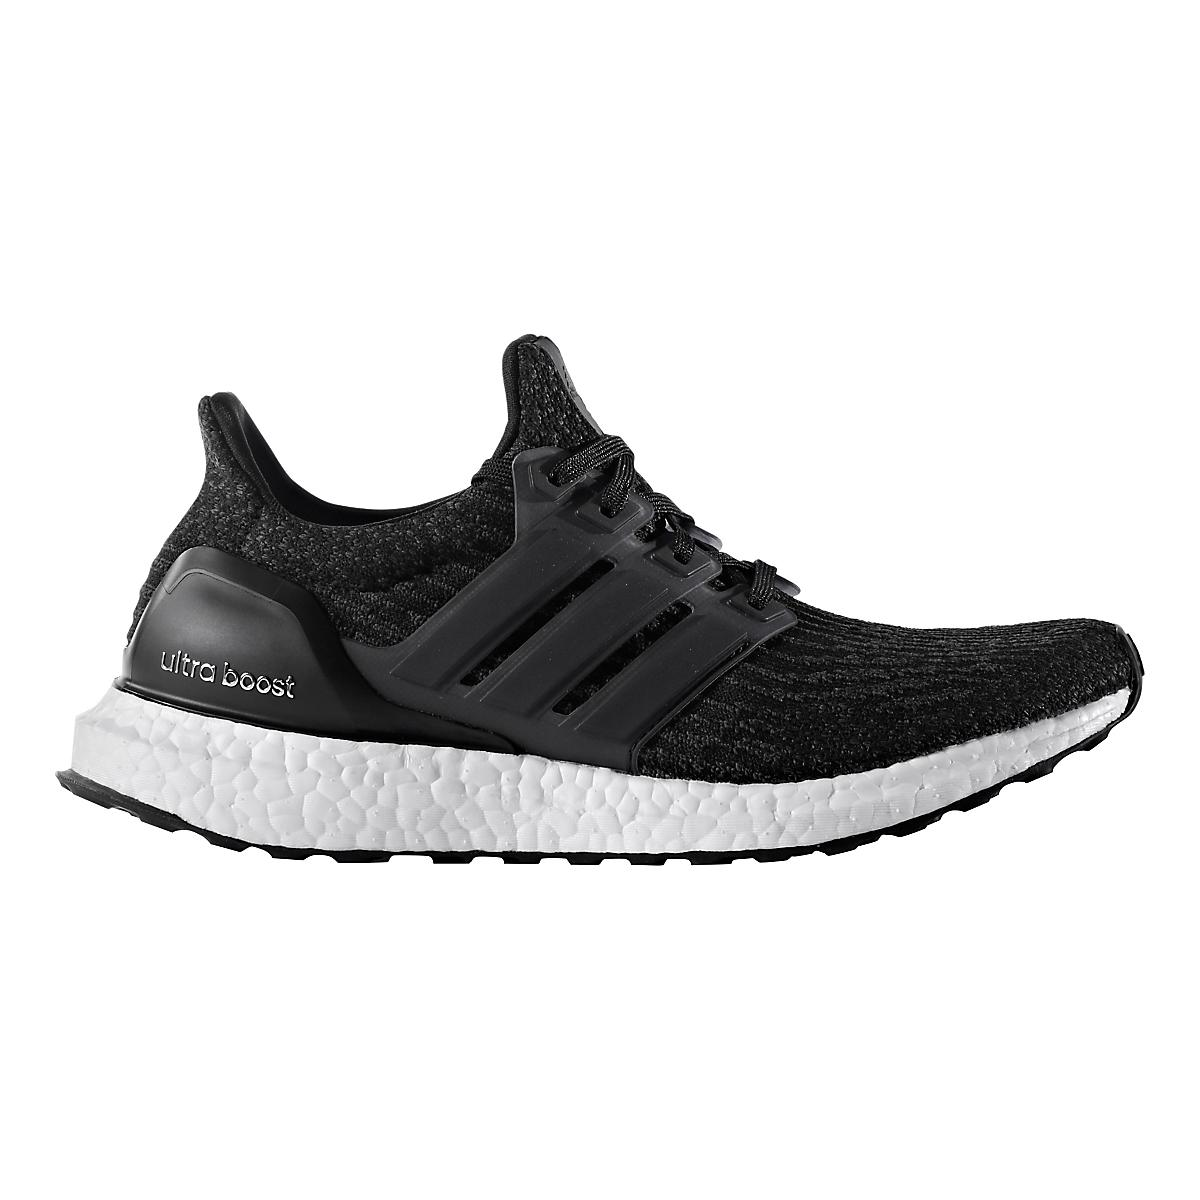 ace74b4009793 Womens adidas Ultra Boost Running Shoe at Road Runner Sports